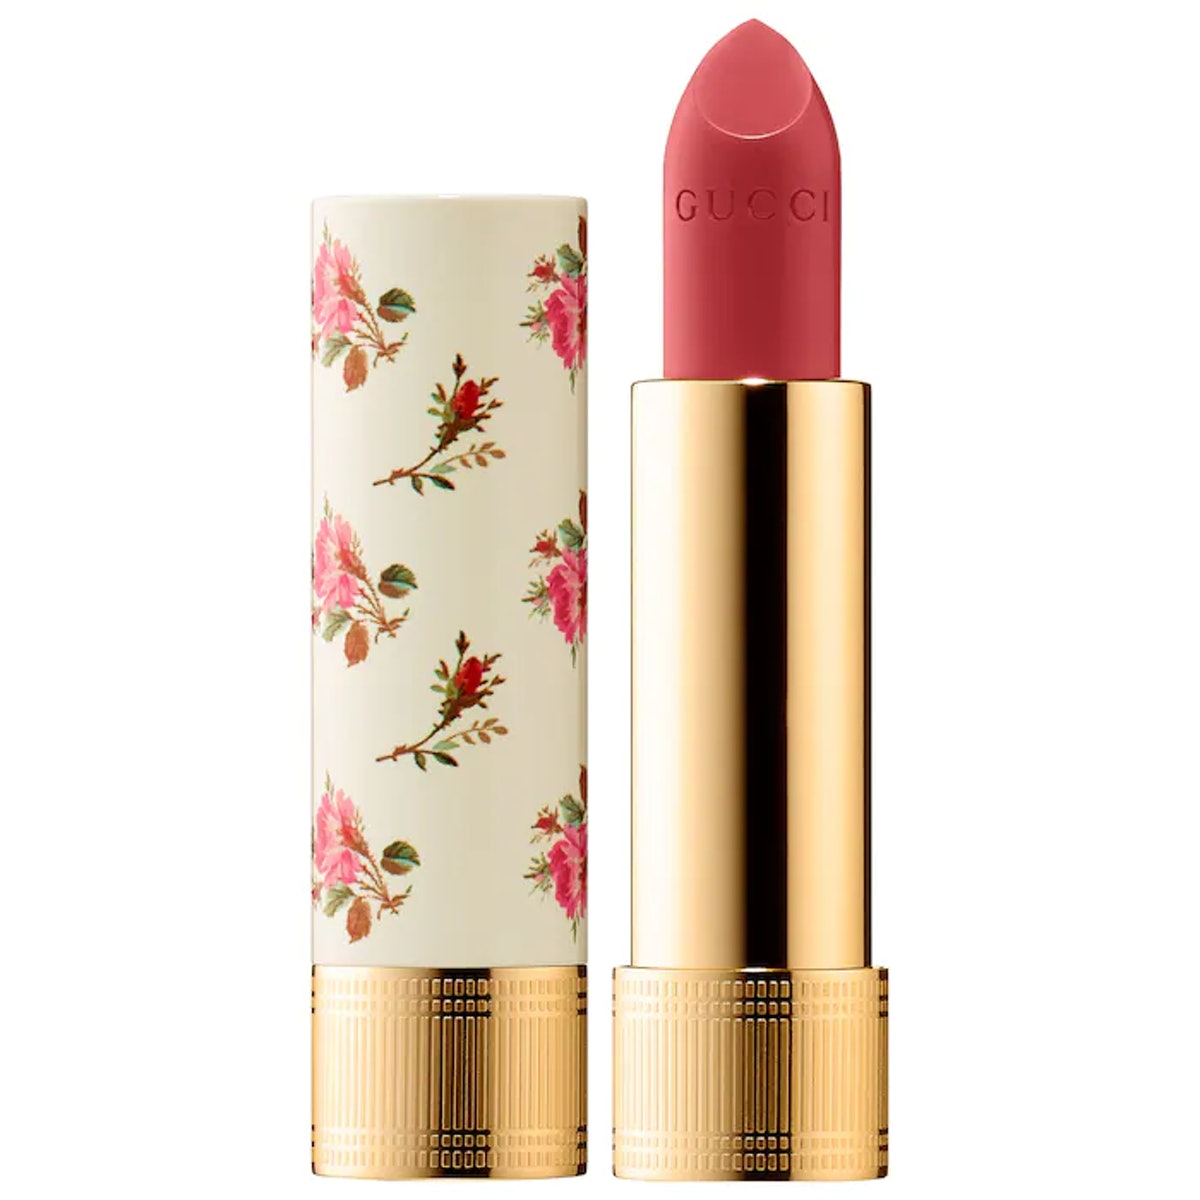 Rouge à Lèvres Voile Sheer Lipstick in 201